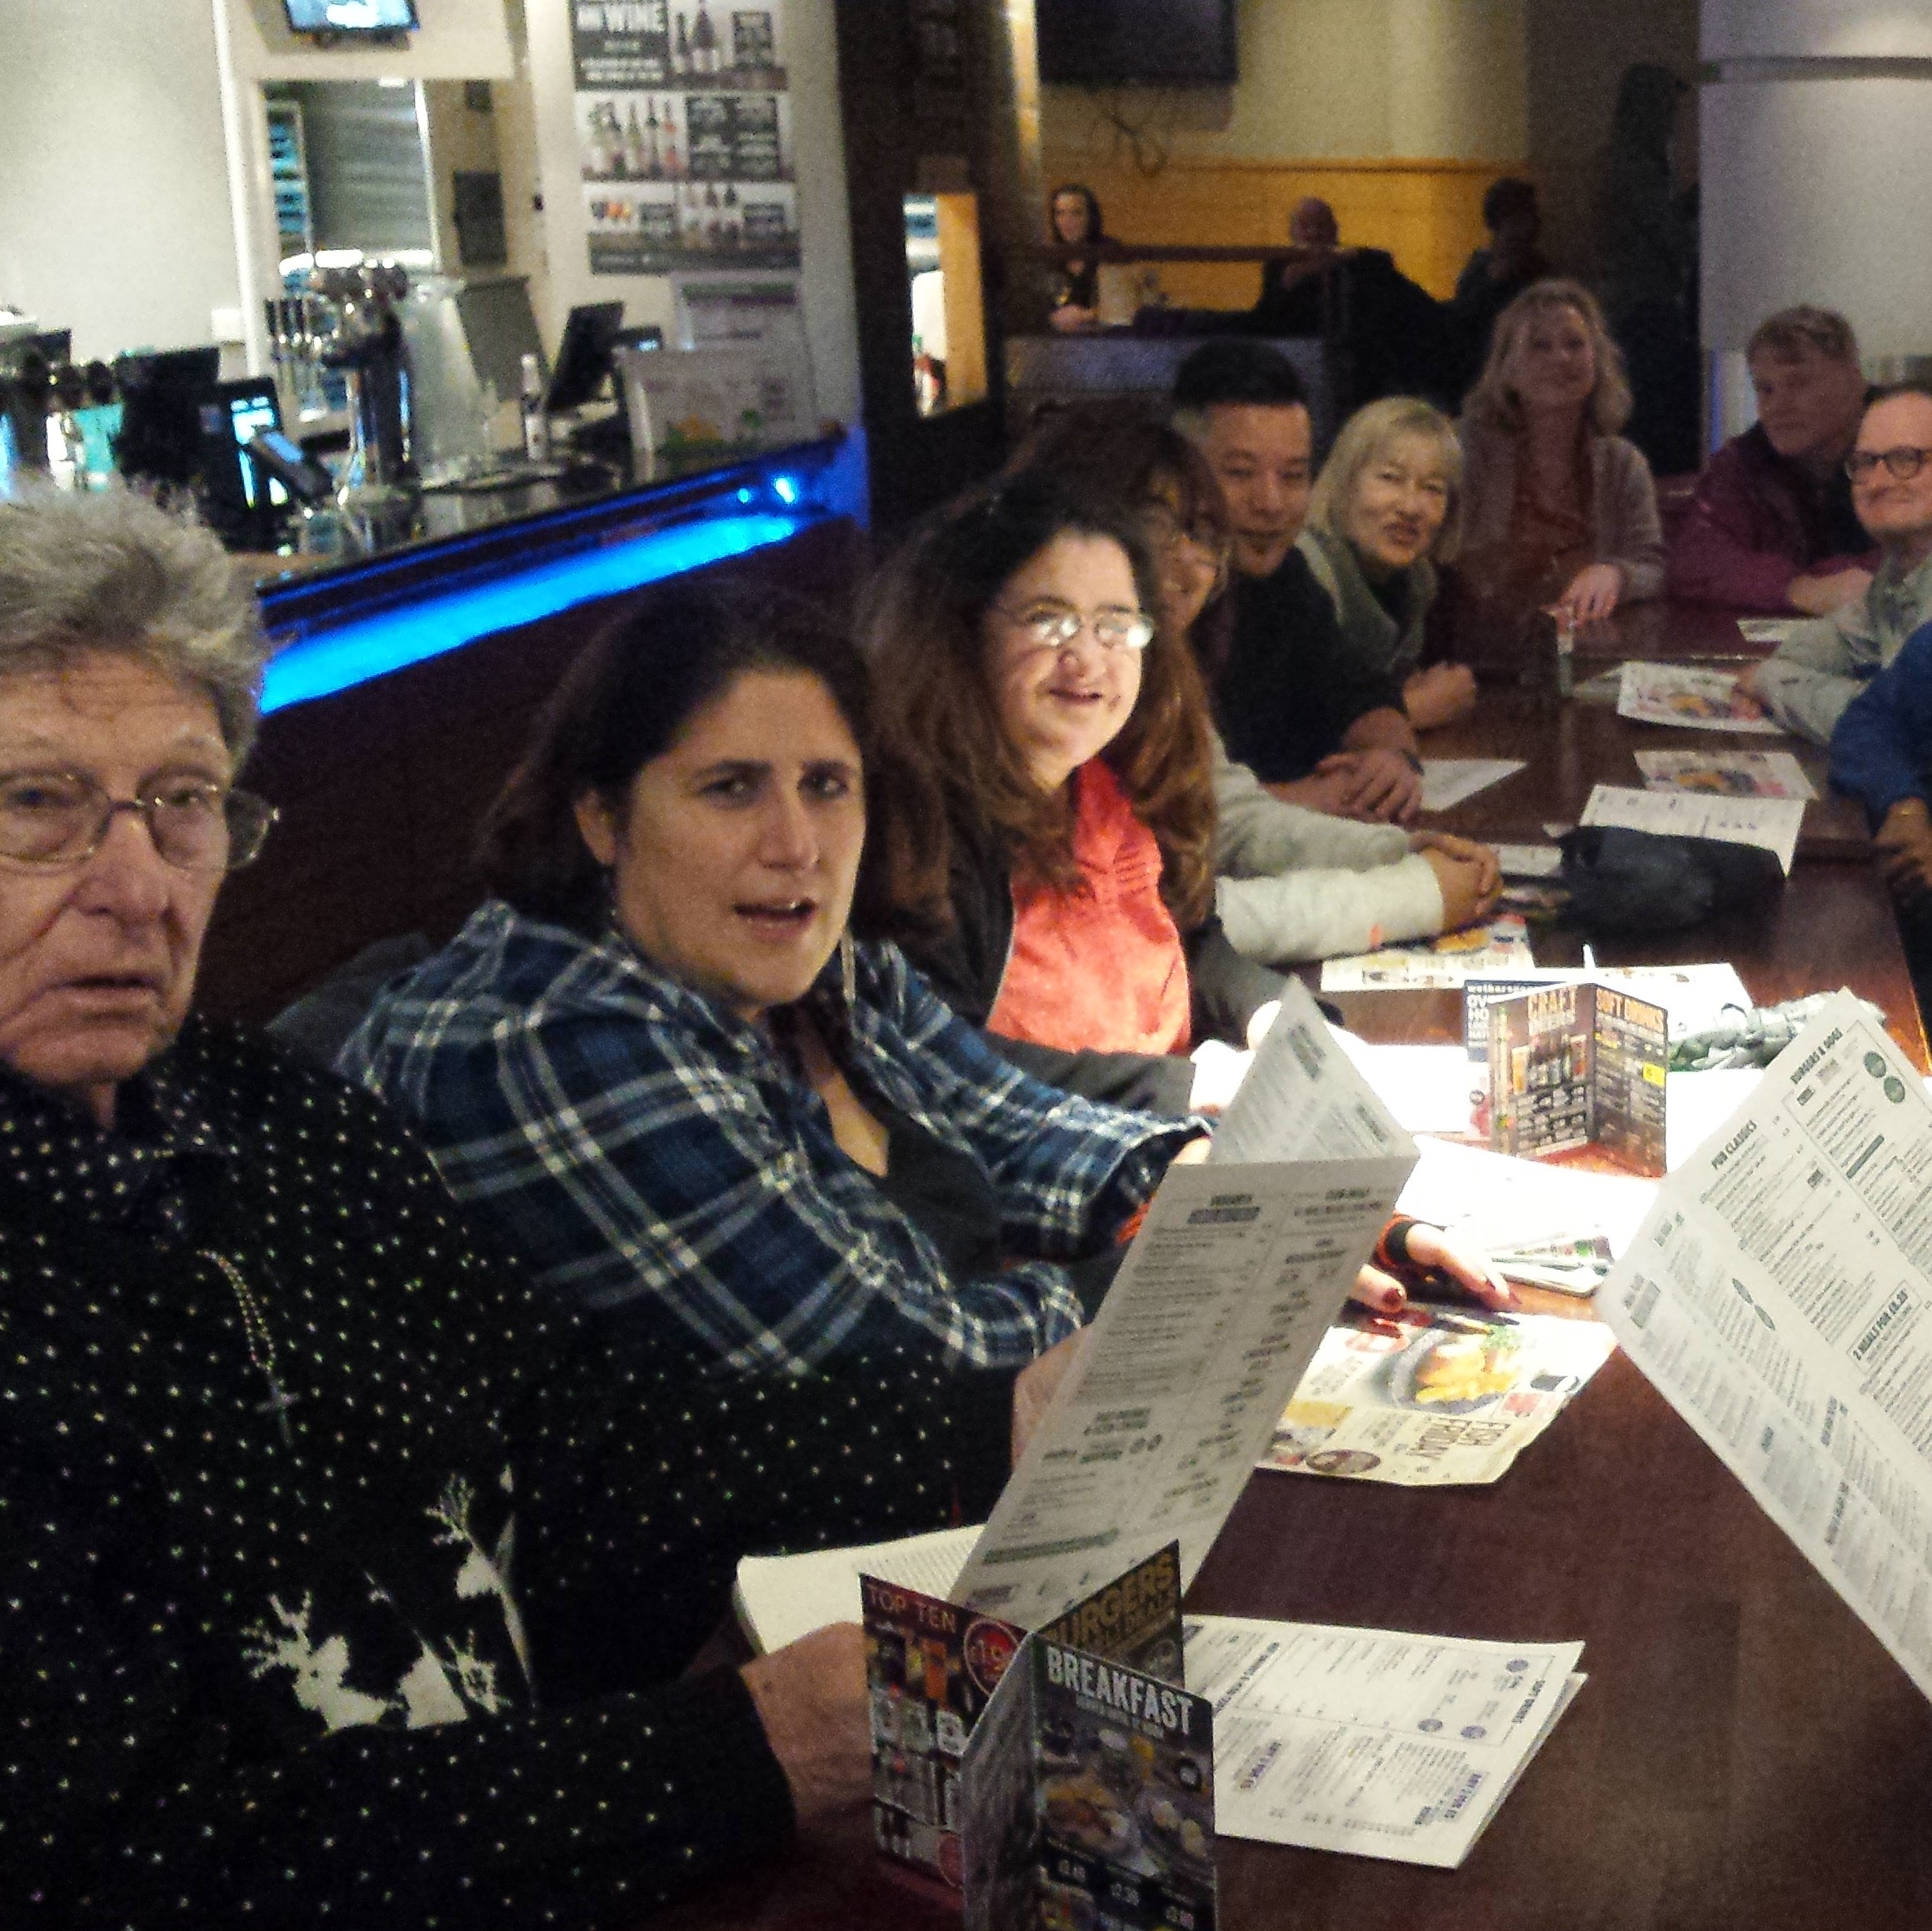 MTJAC Rethink Members Day Birmingham Nov 2016 Wetherspoons sq.jpg